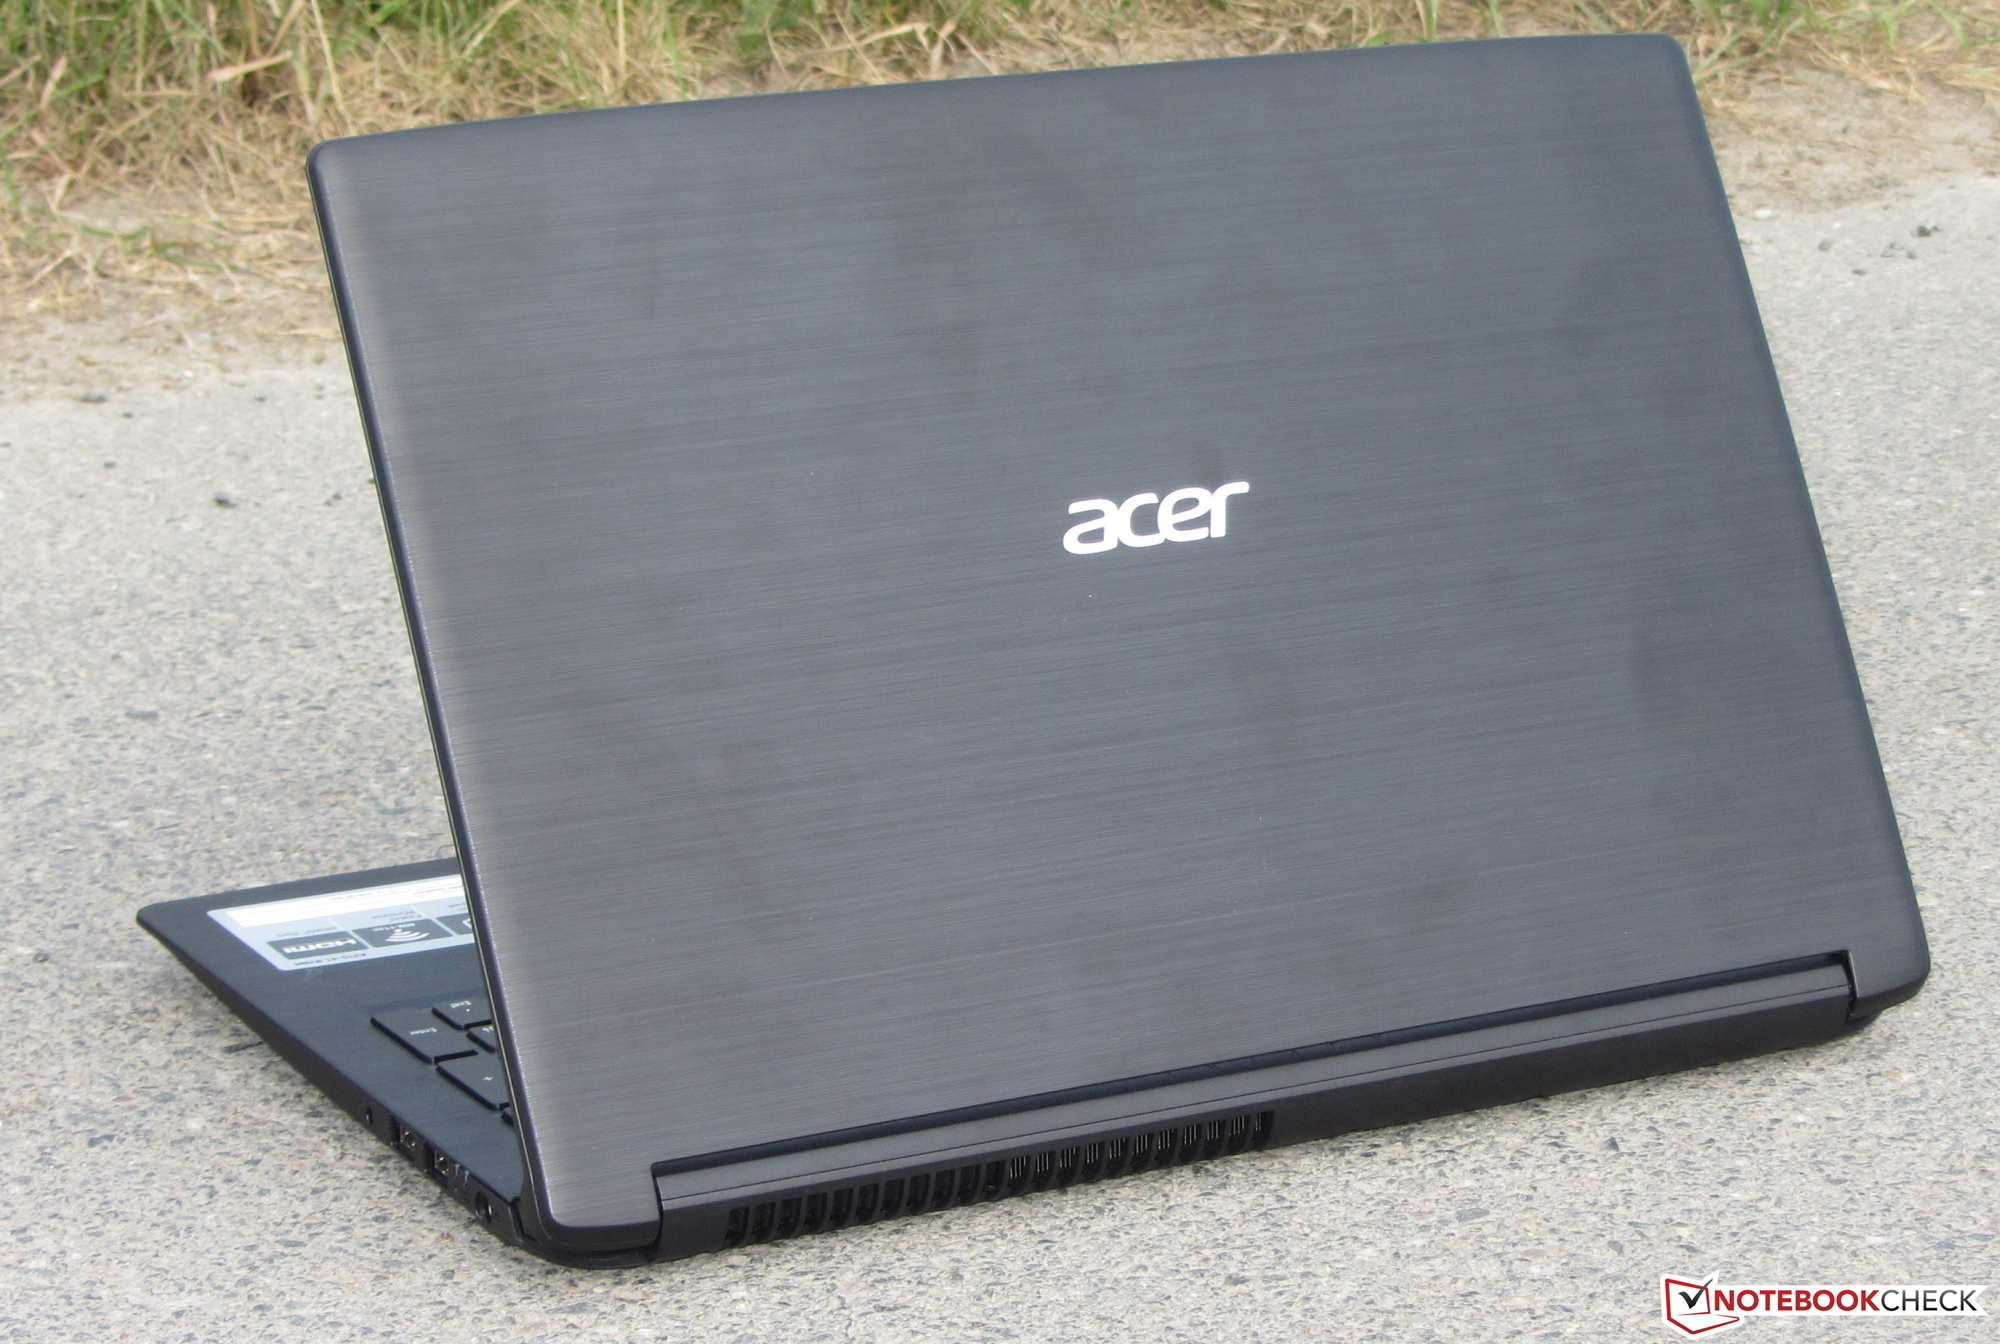 Acer Extensa 4010 Notebook AMD CPU Download Drivers